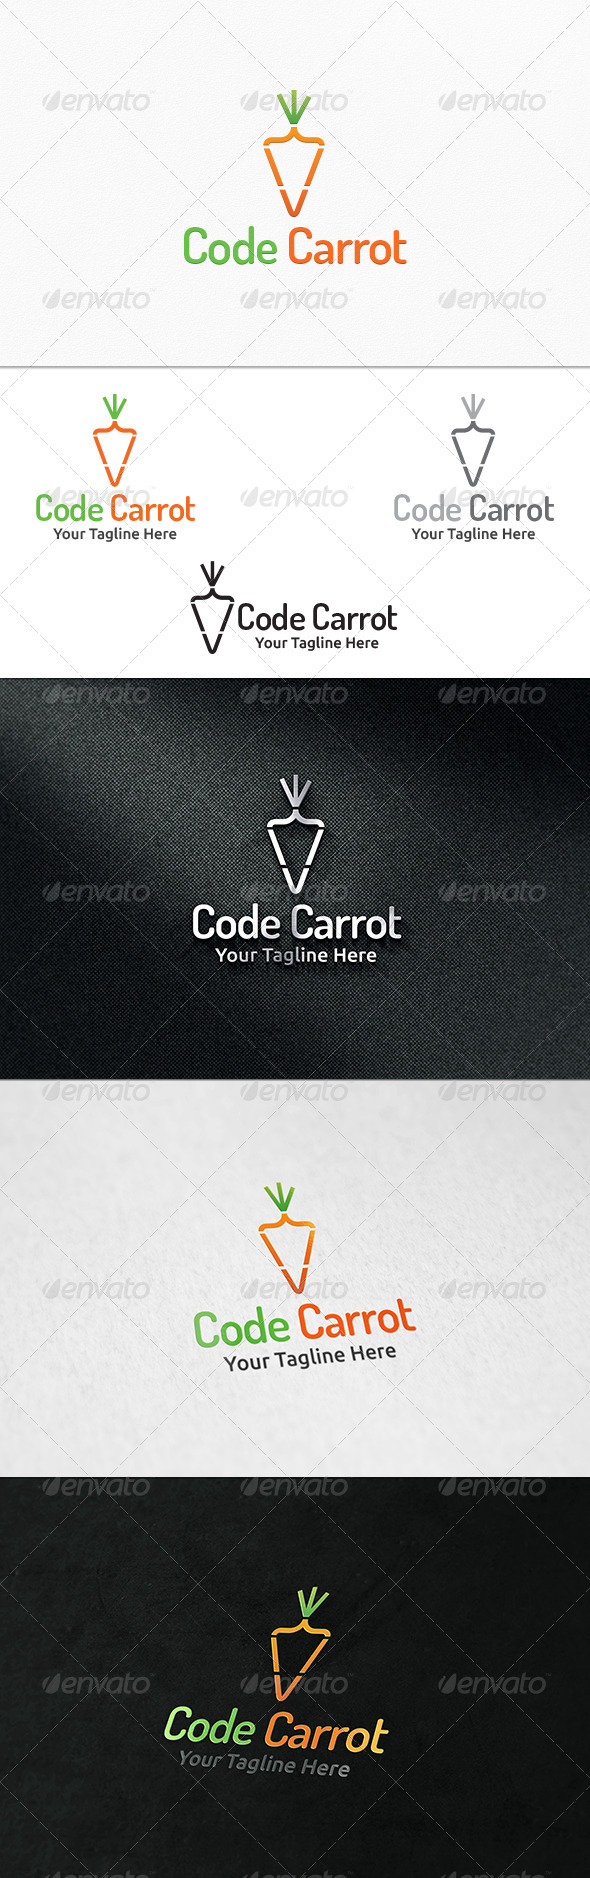 GraphicRiver Code Carrot Logo Template 8159943